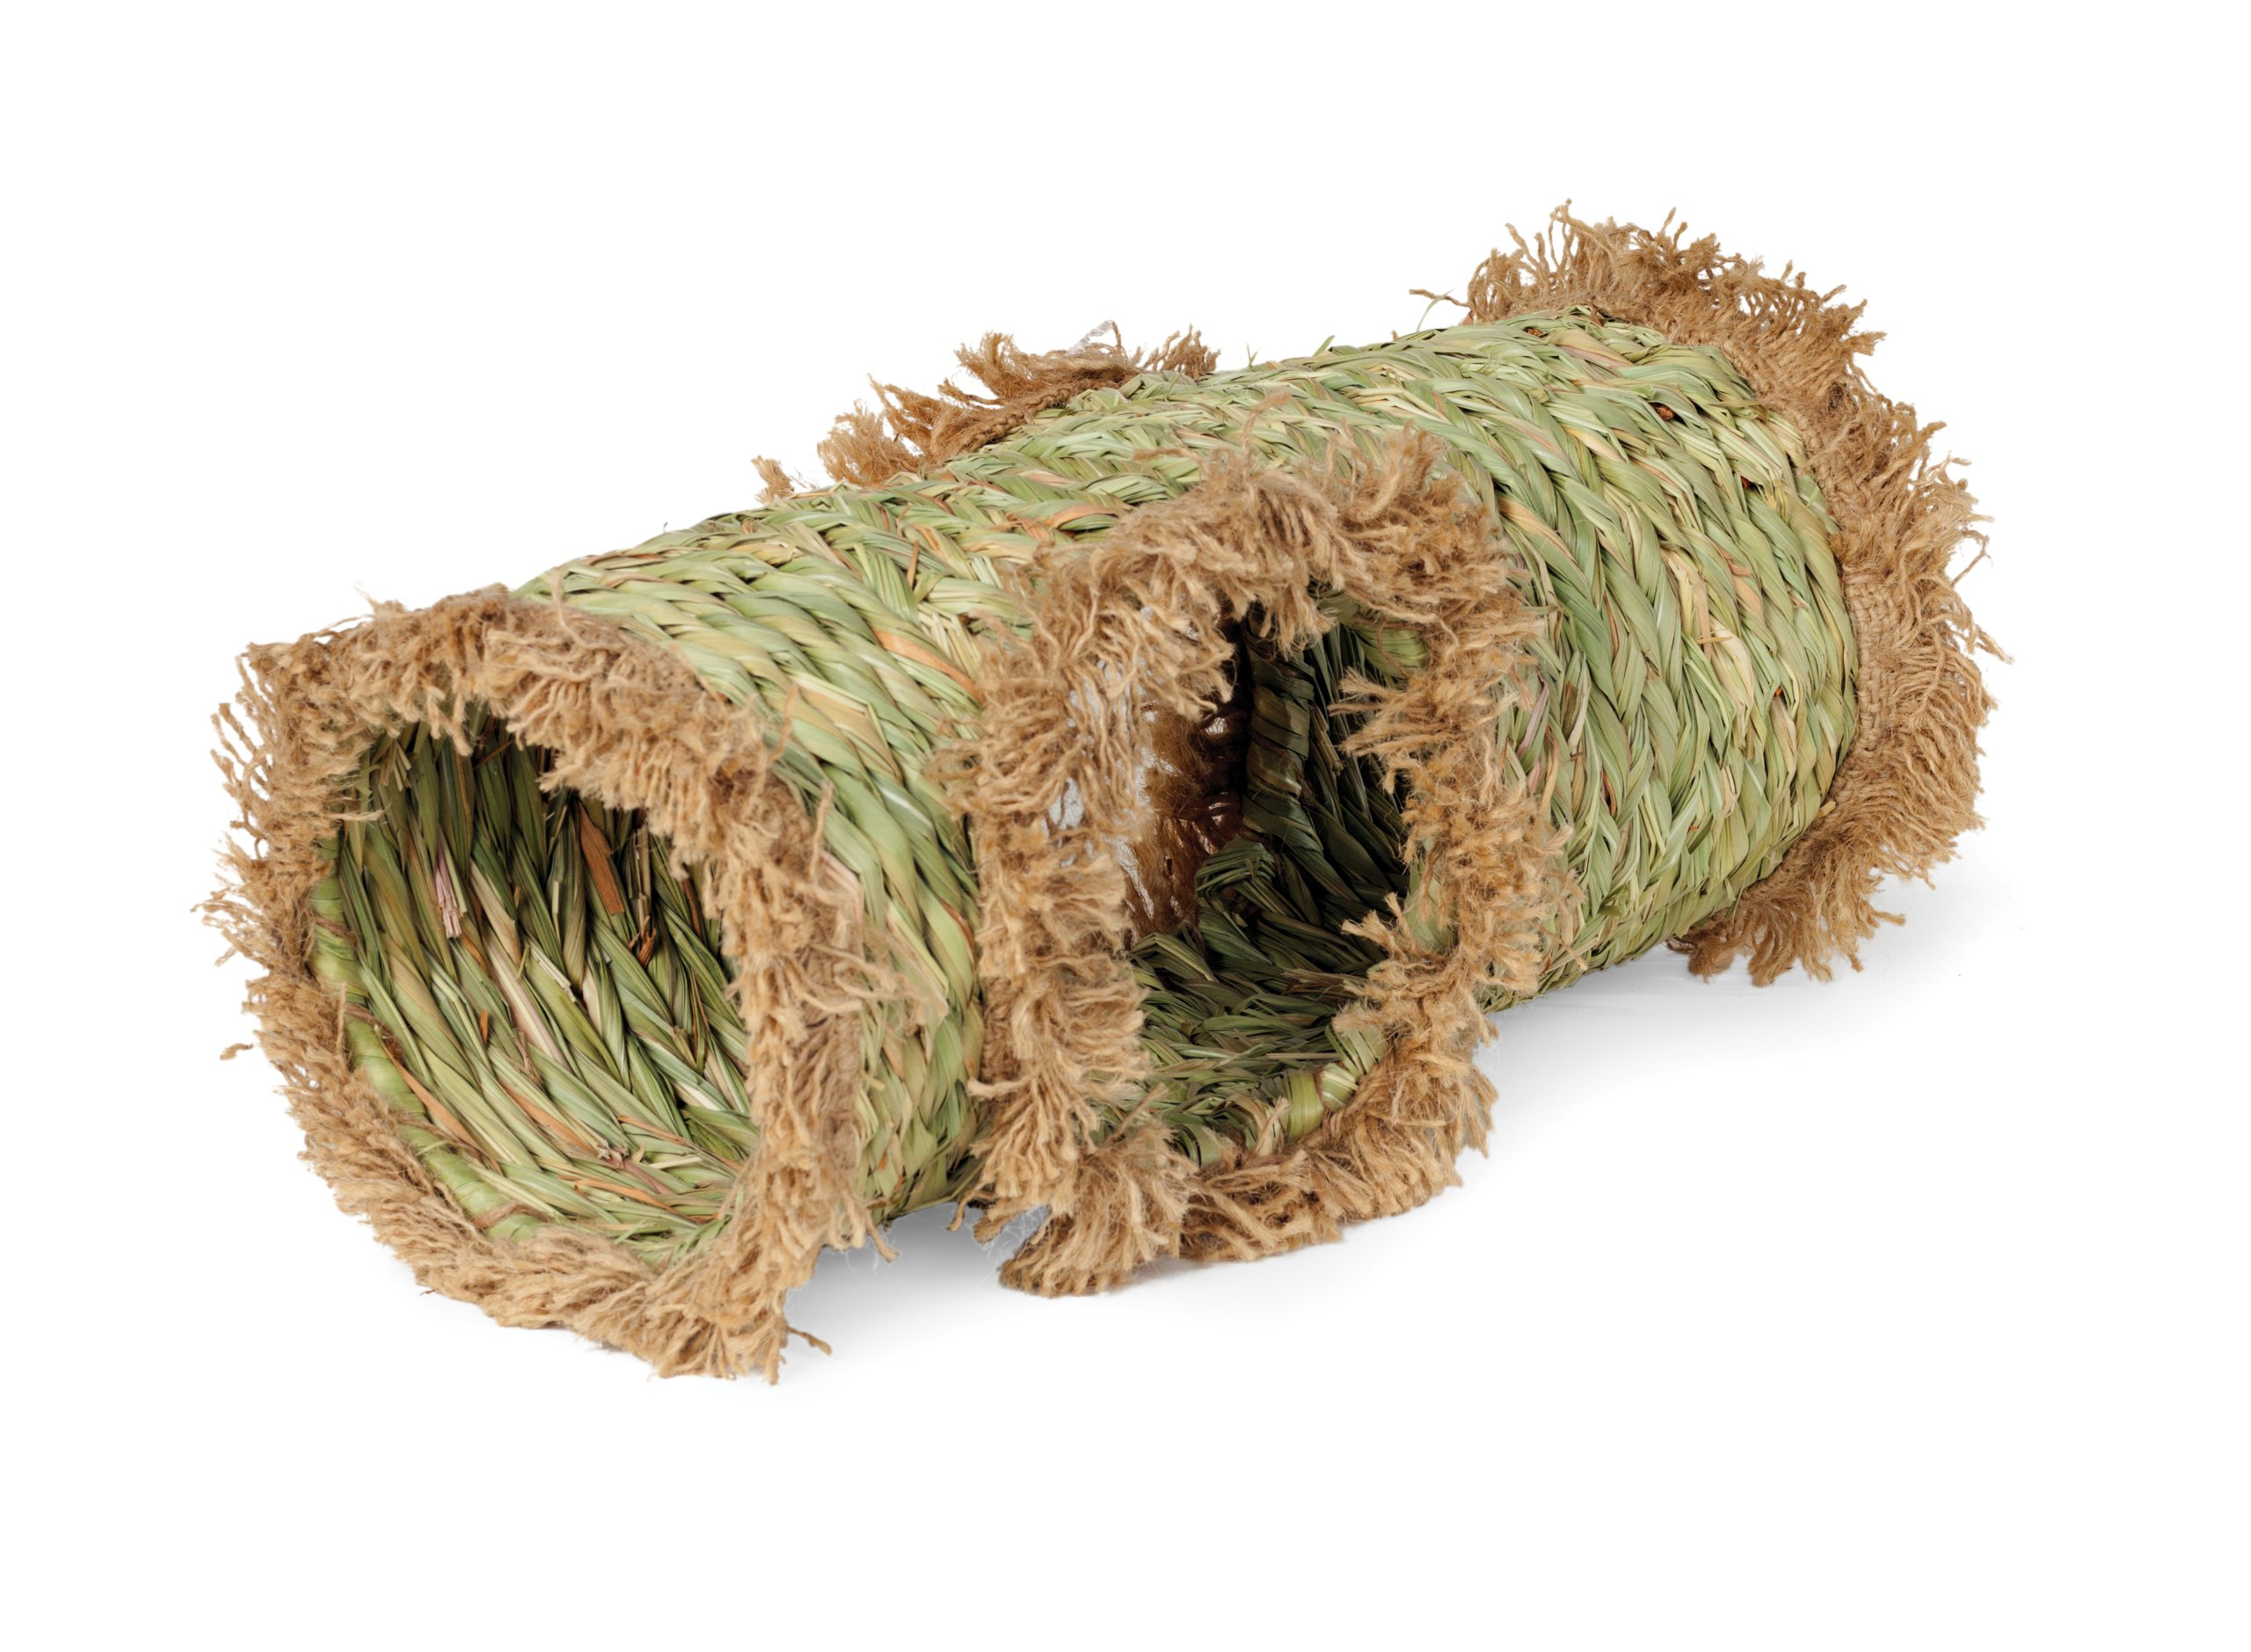 Prevue Hendryx 1098 Nature's Hideaway Grass Tunnel Toy by Prevue Hendryx